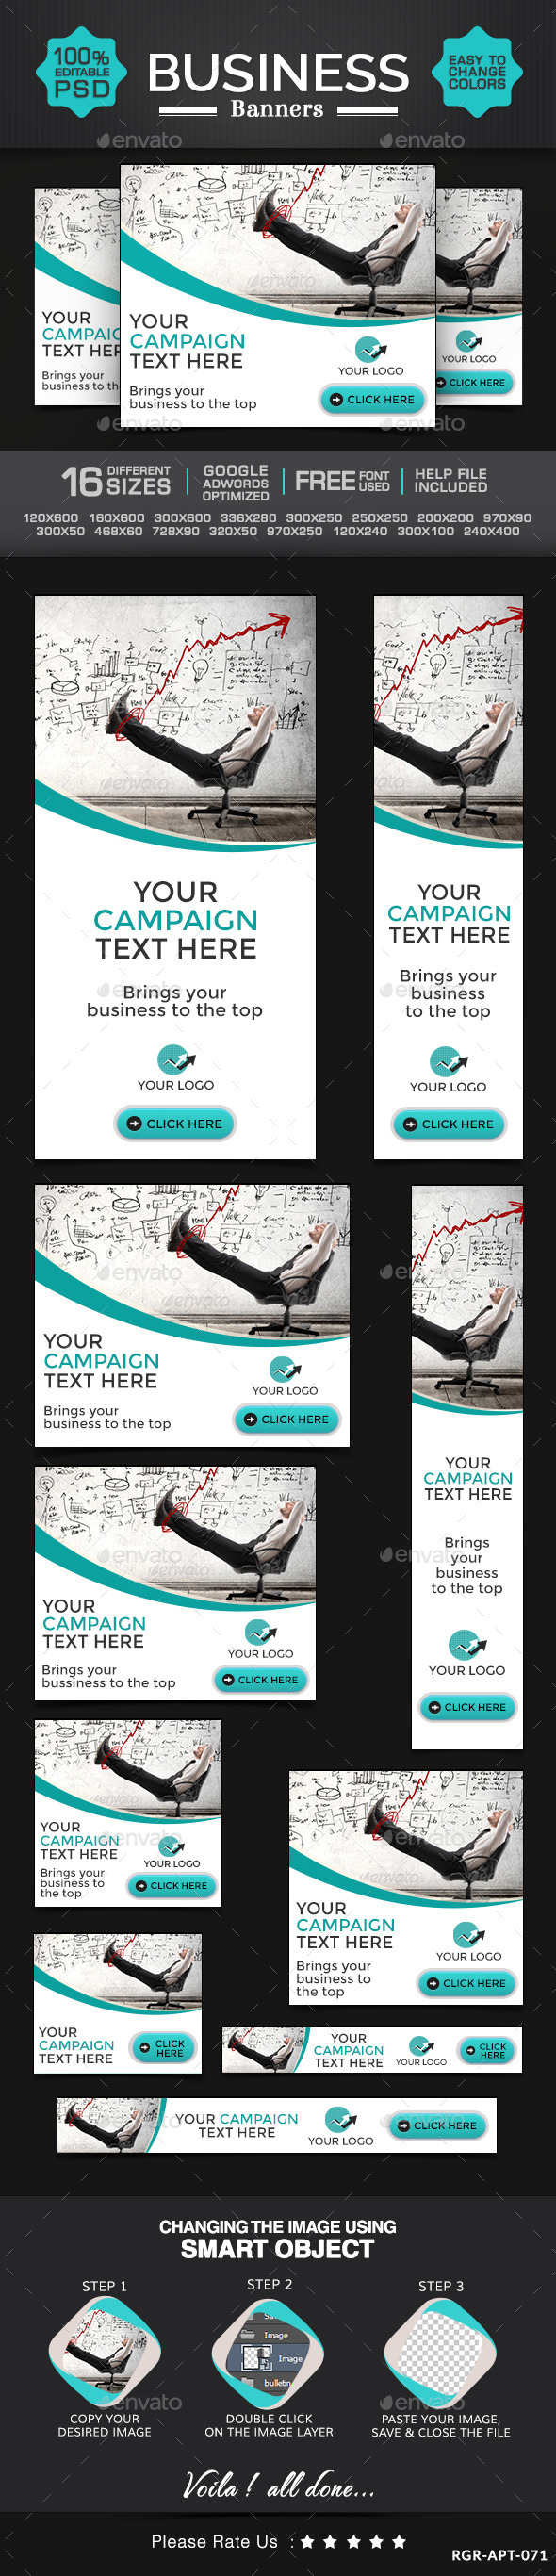 GraphicRiver Business & Marketing Banners 8987947